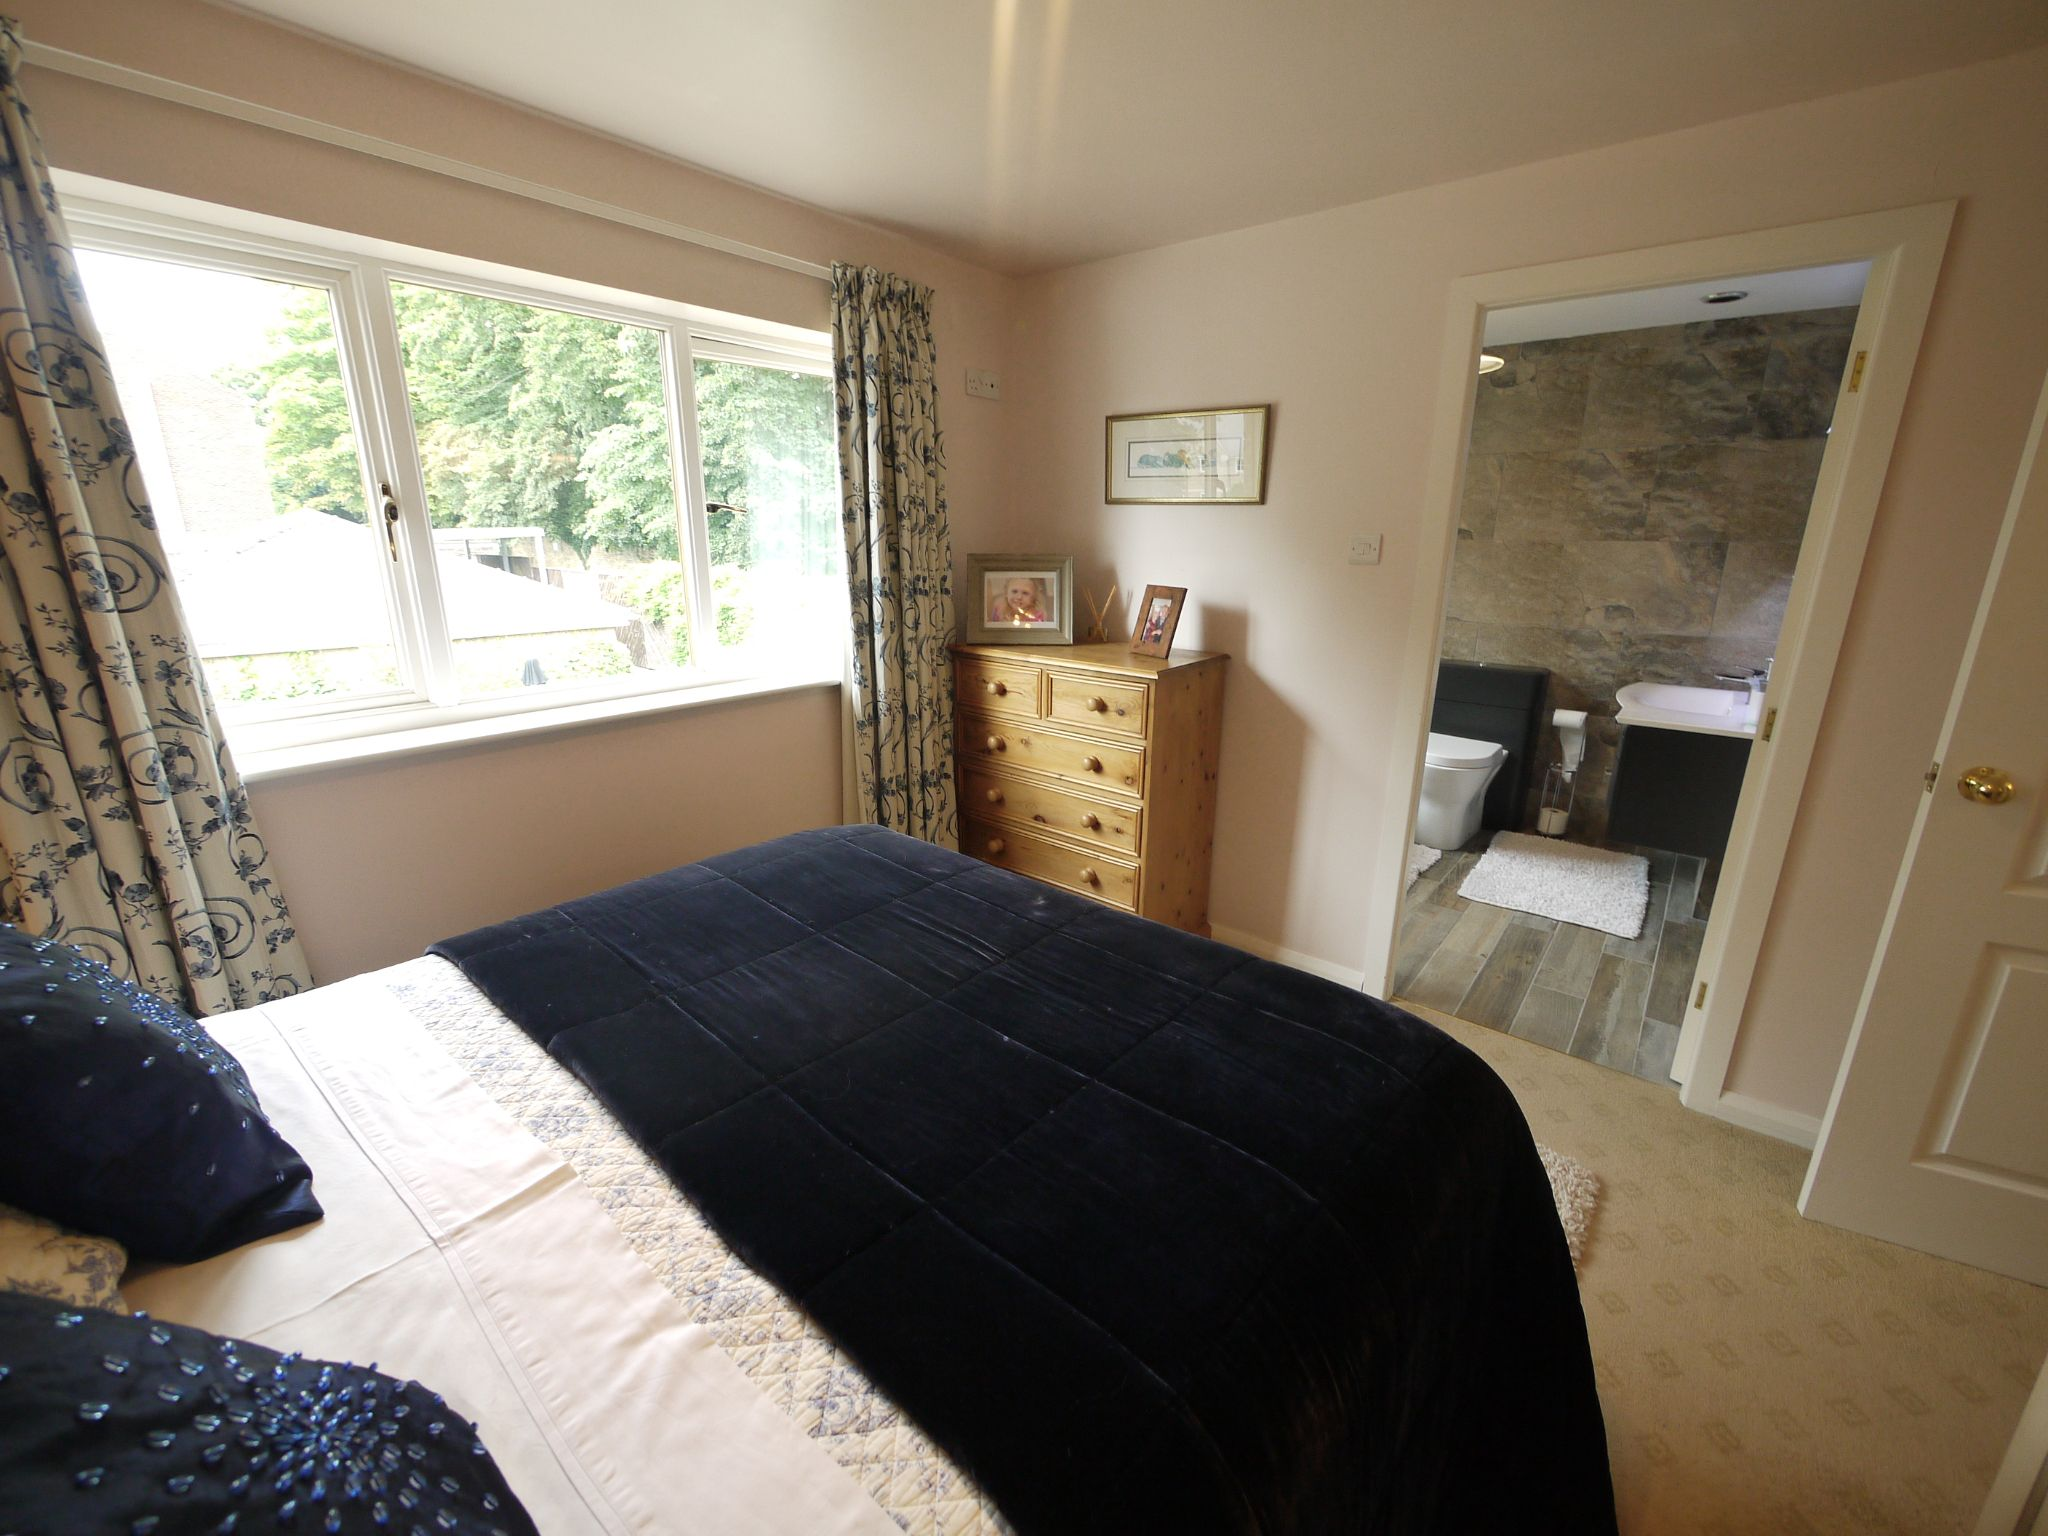 4 bedroom detached house For Sale in Brighouse - Bed 2 internet.